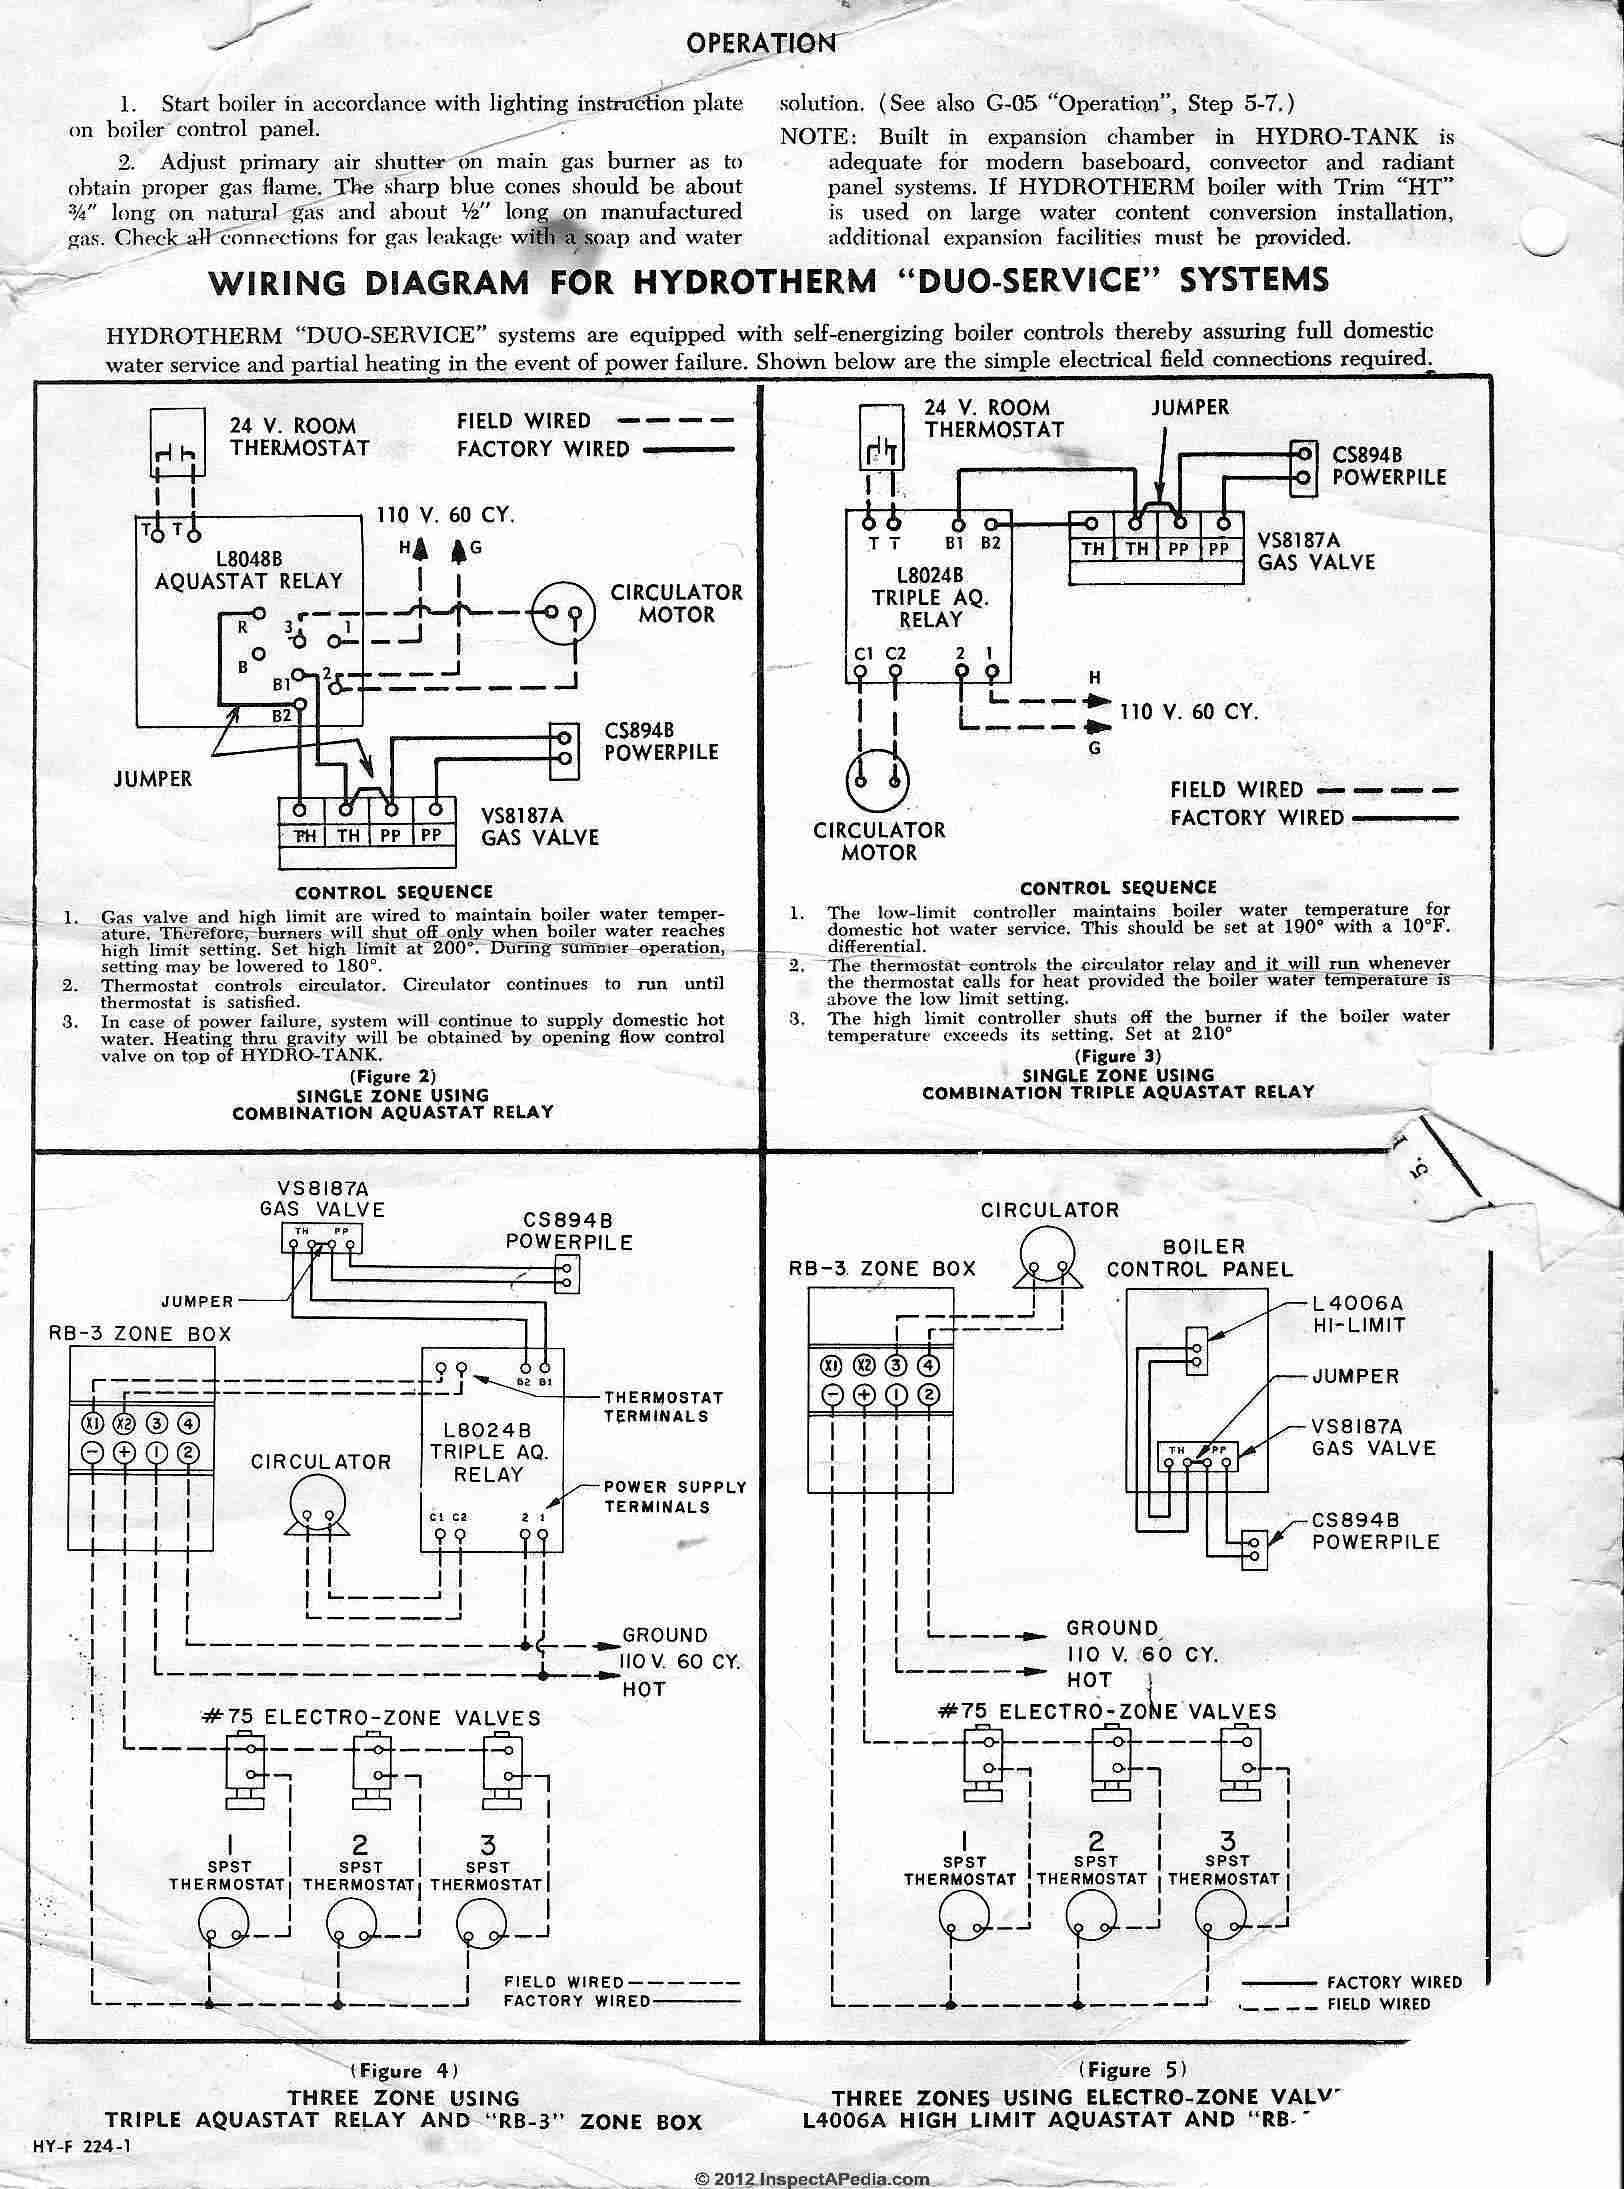 L8024B_Aquastat_0422_DJFcs heating boiler aquastat control diagnosis, troubleshooting, repair imit boiler thermostat wiring diagram at mr168.co